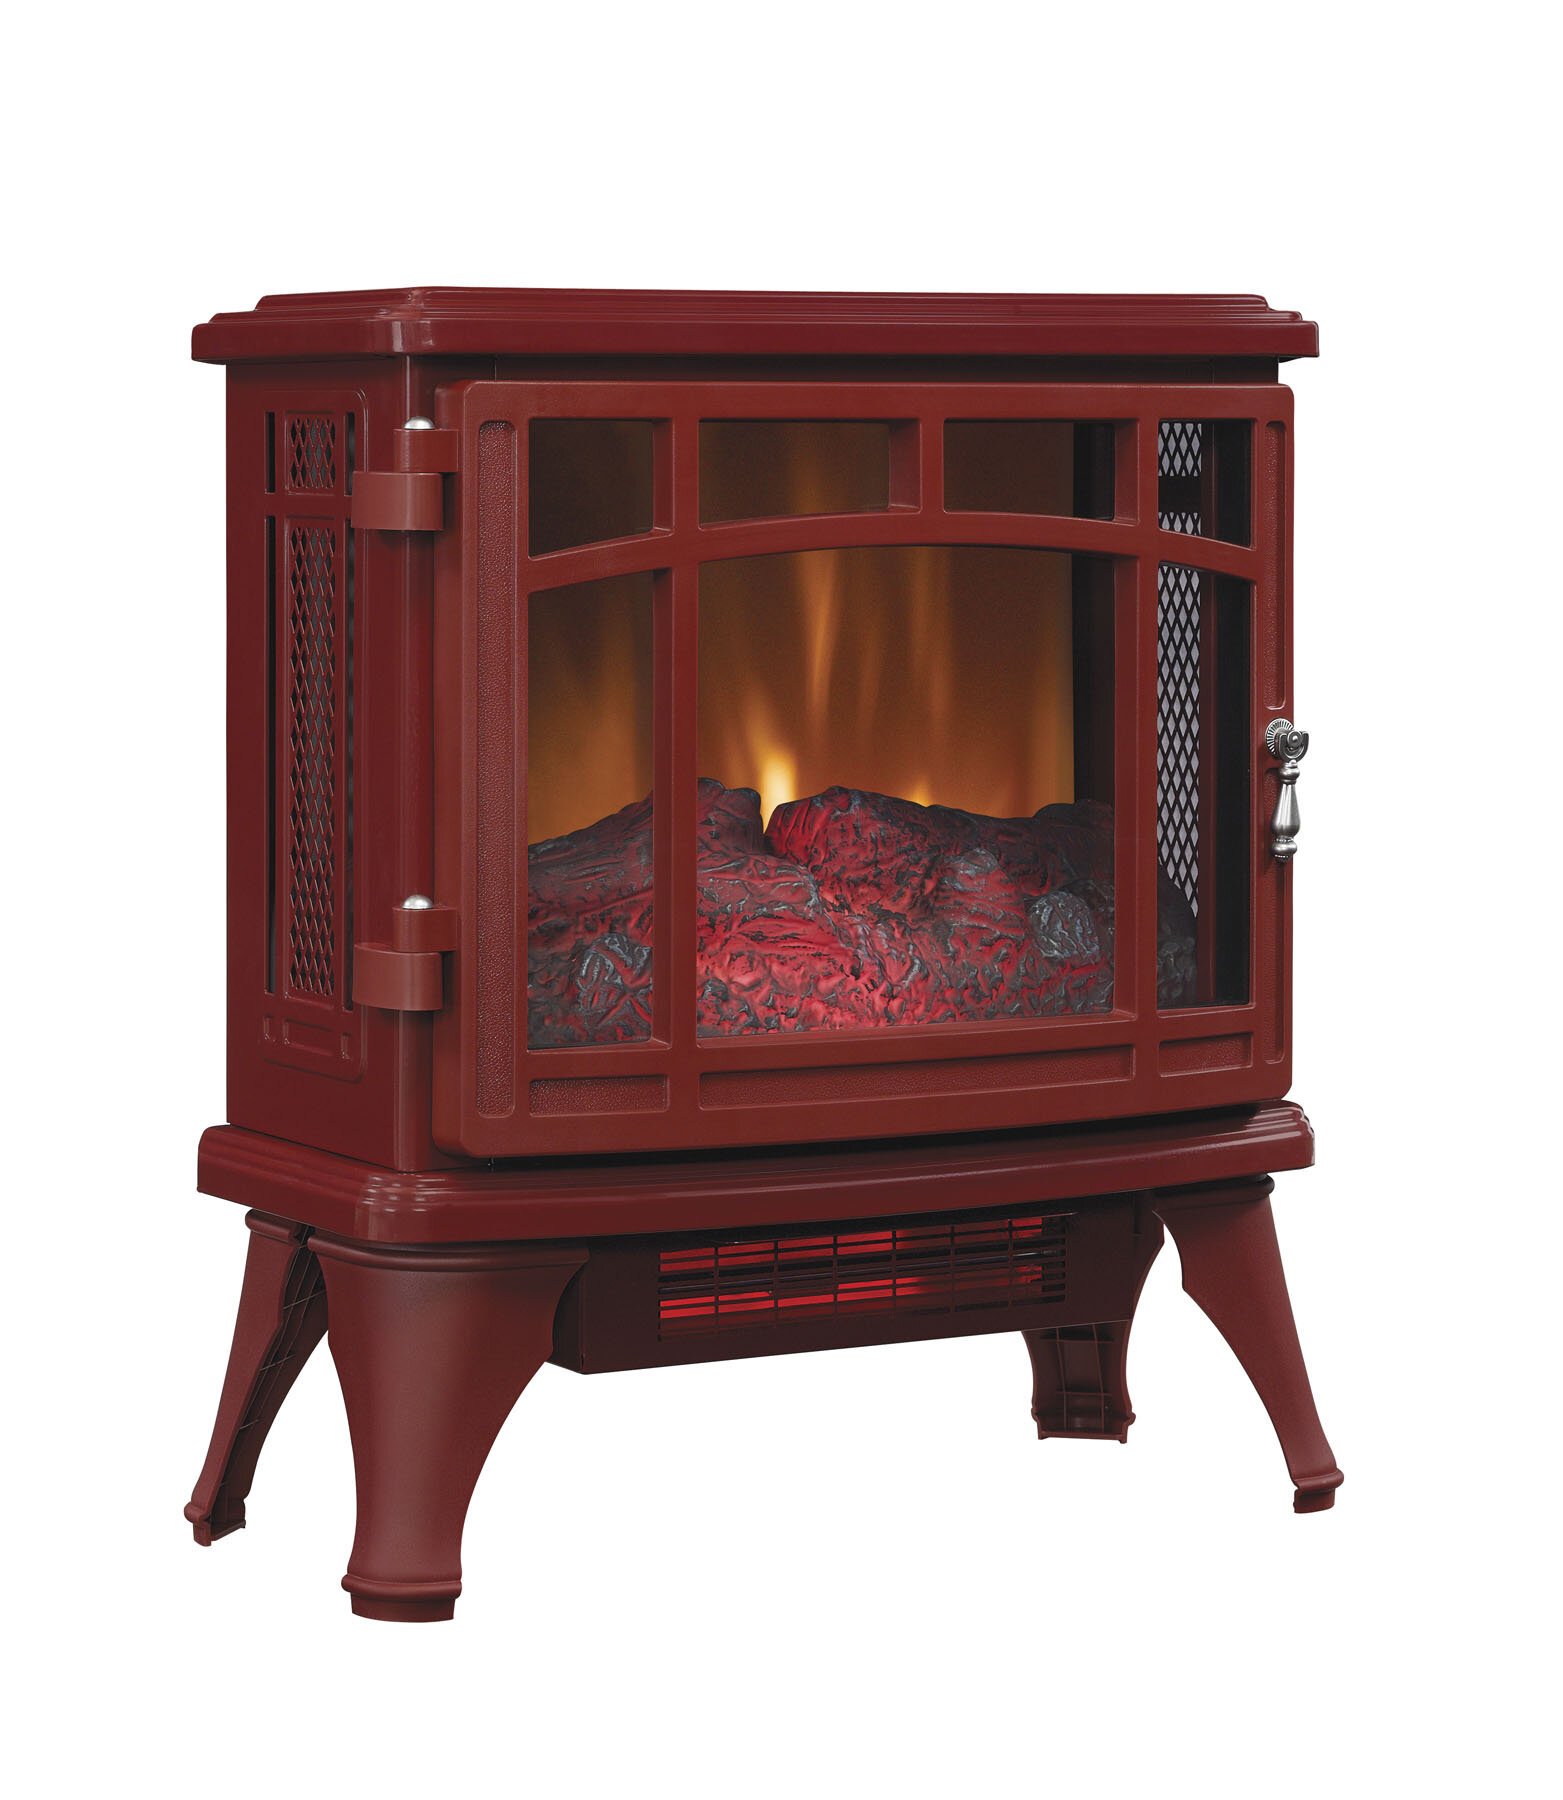 Duraflame Infrared Quartz Fireplace 1 000 Square Foot Electric Stove Ebay